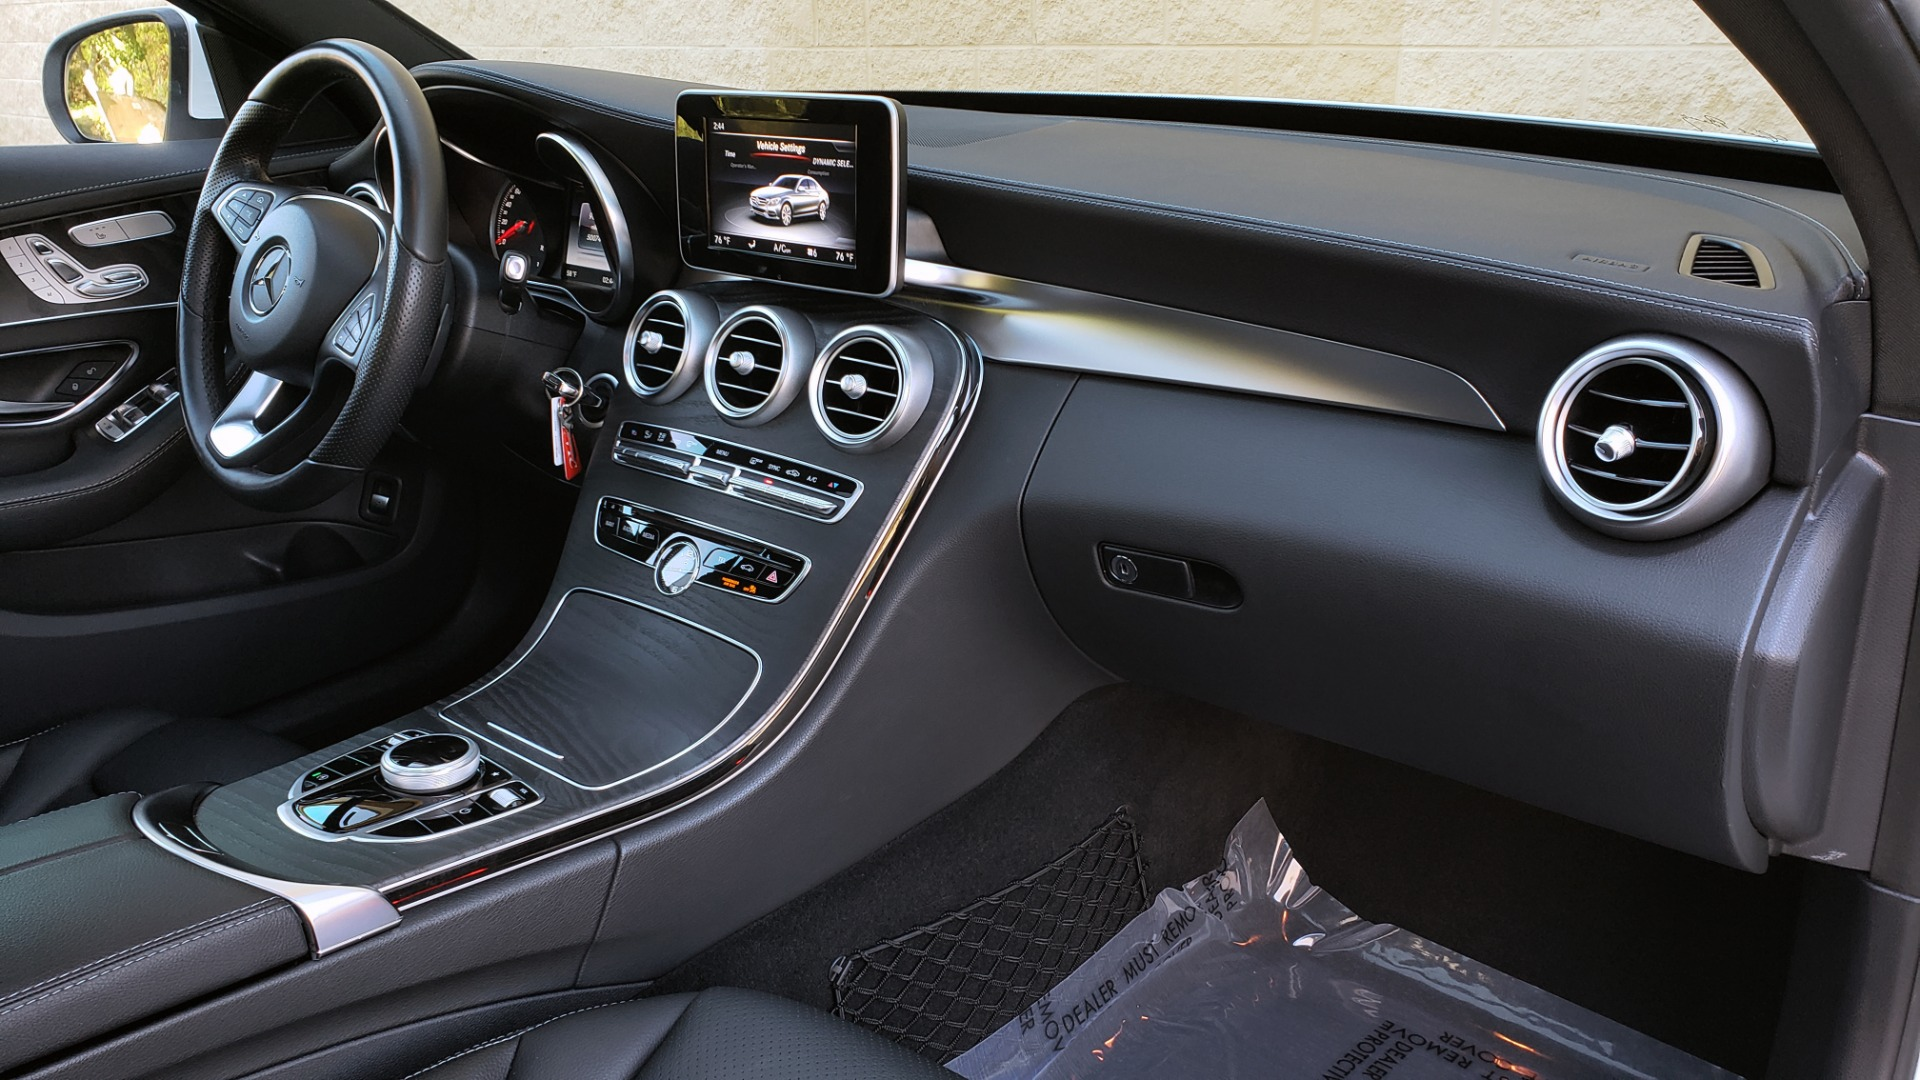 Used 2017 Mercedes-Benz C-CLASS C 300 SPORT / PREM PKG / PANO-ROOF / NAV / HTD STST / REARVIEW for sale Sold at Formula Imports in Charlotte NC 28227 63